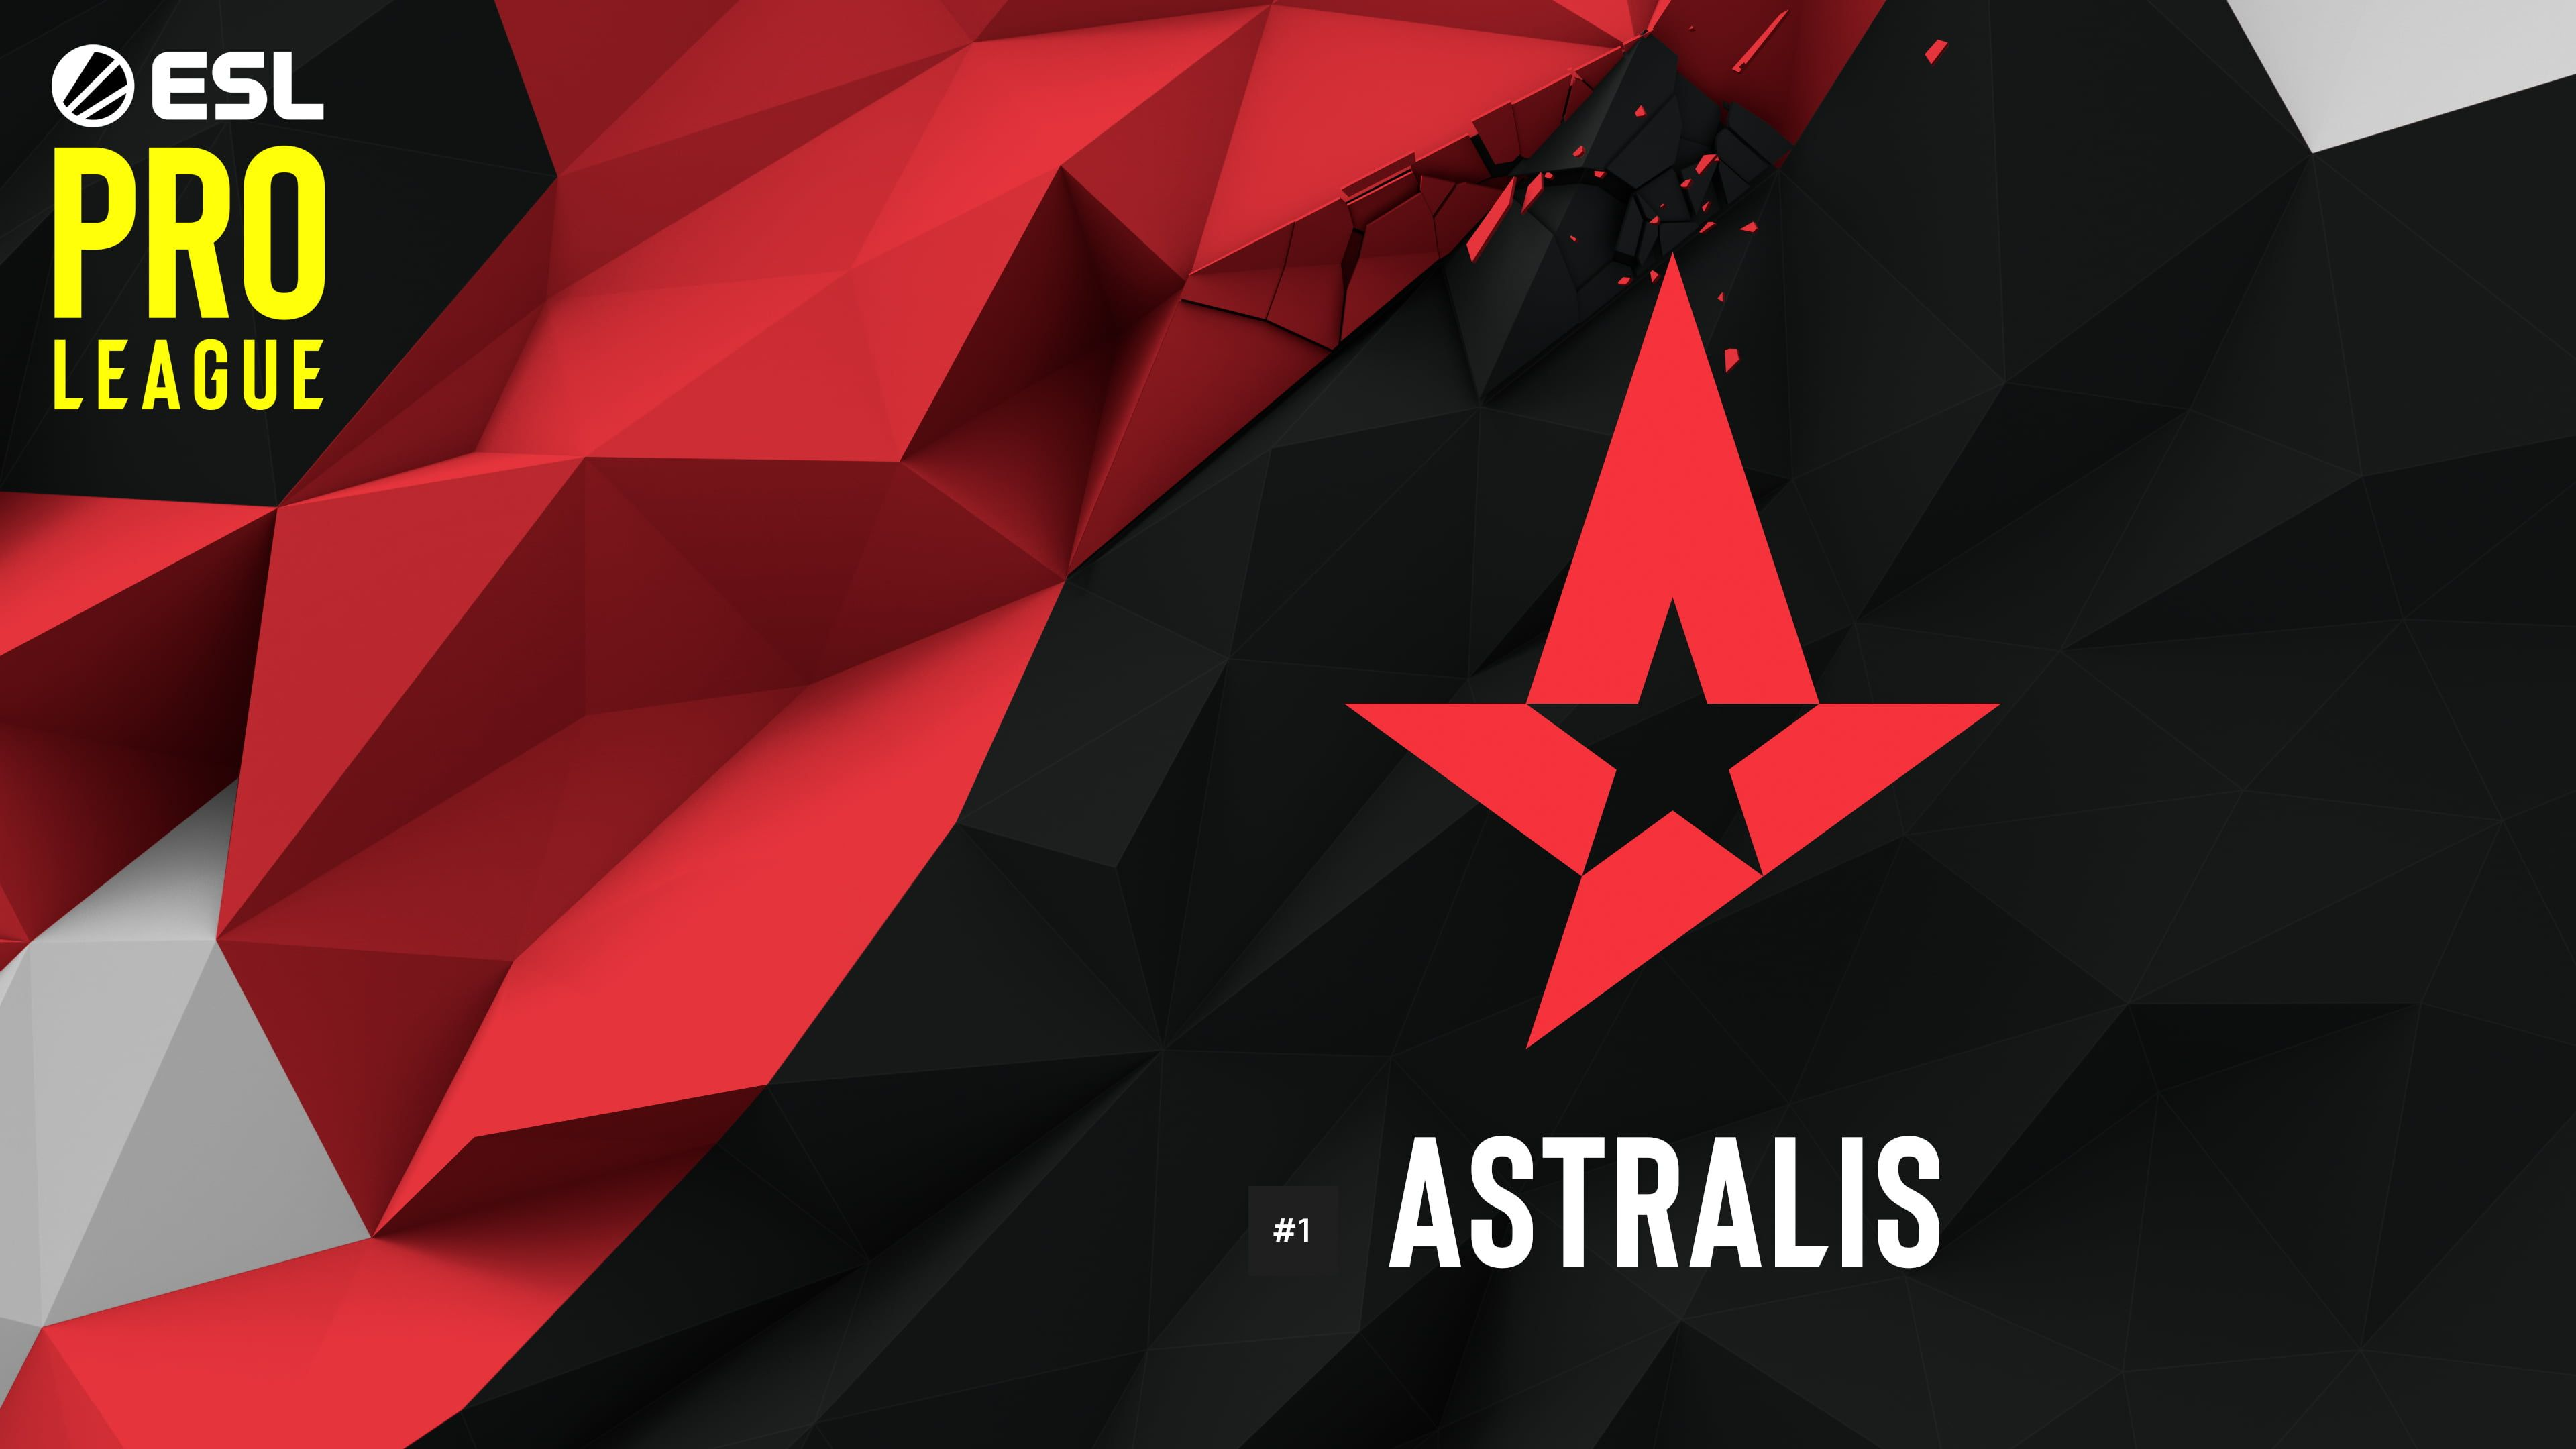 Electronic Sports League Counter Strike Global Offensive Cs Go Team Poly Pro Gaming Astralis 3dmax Major League Gaming Ga In 2020 Go Game Hd Wallpaper Game Concept